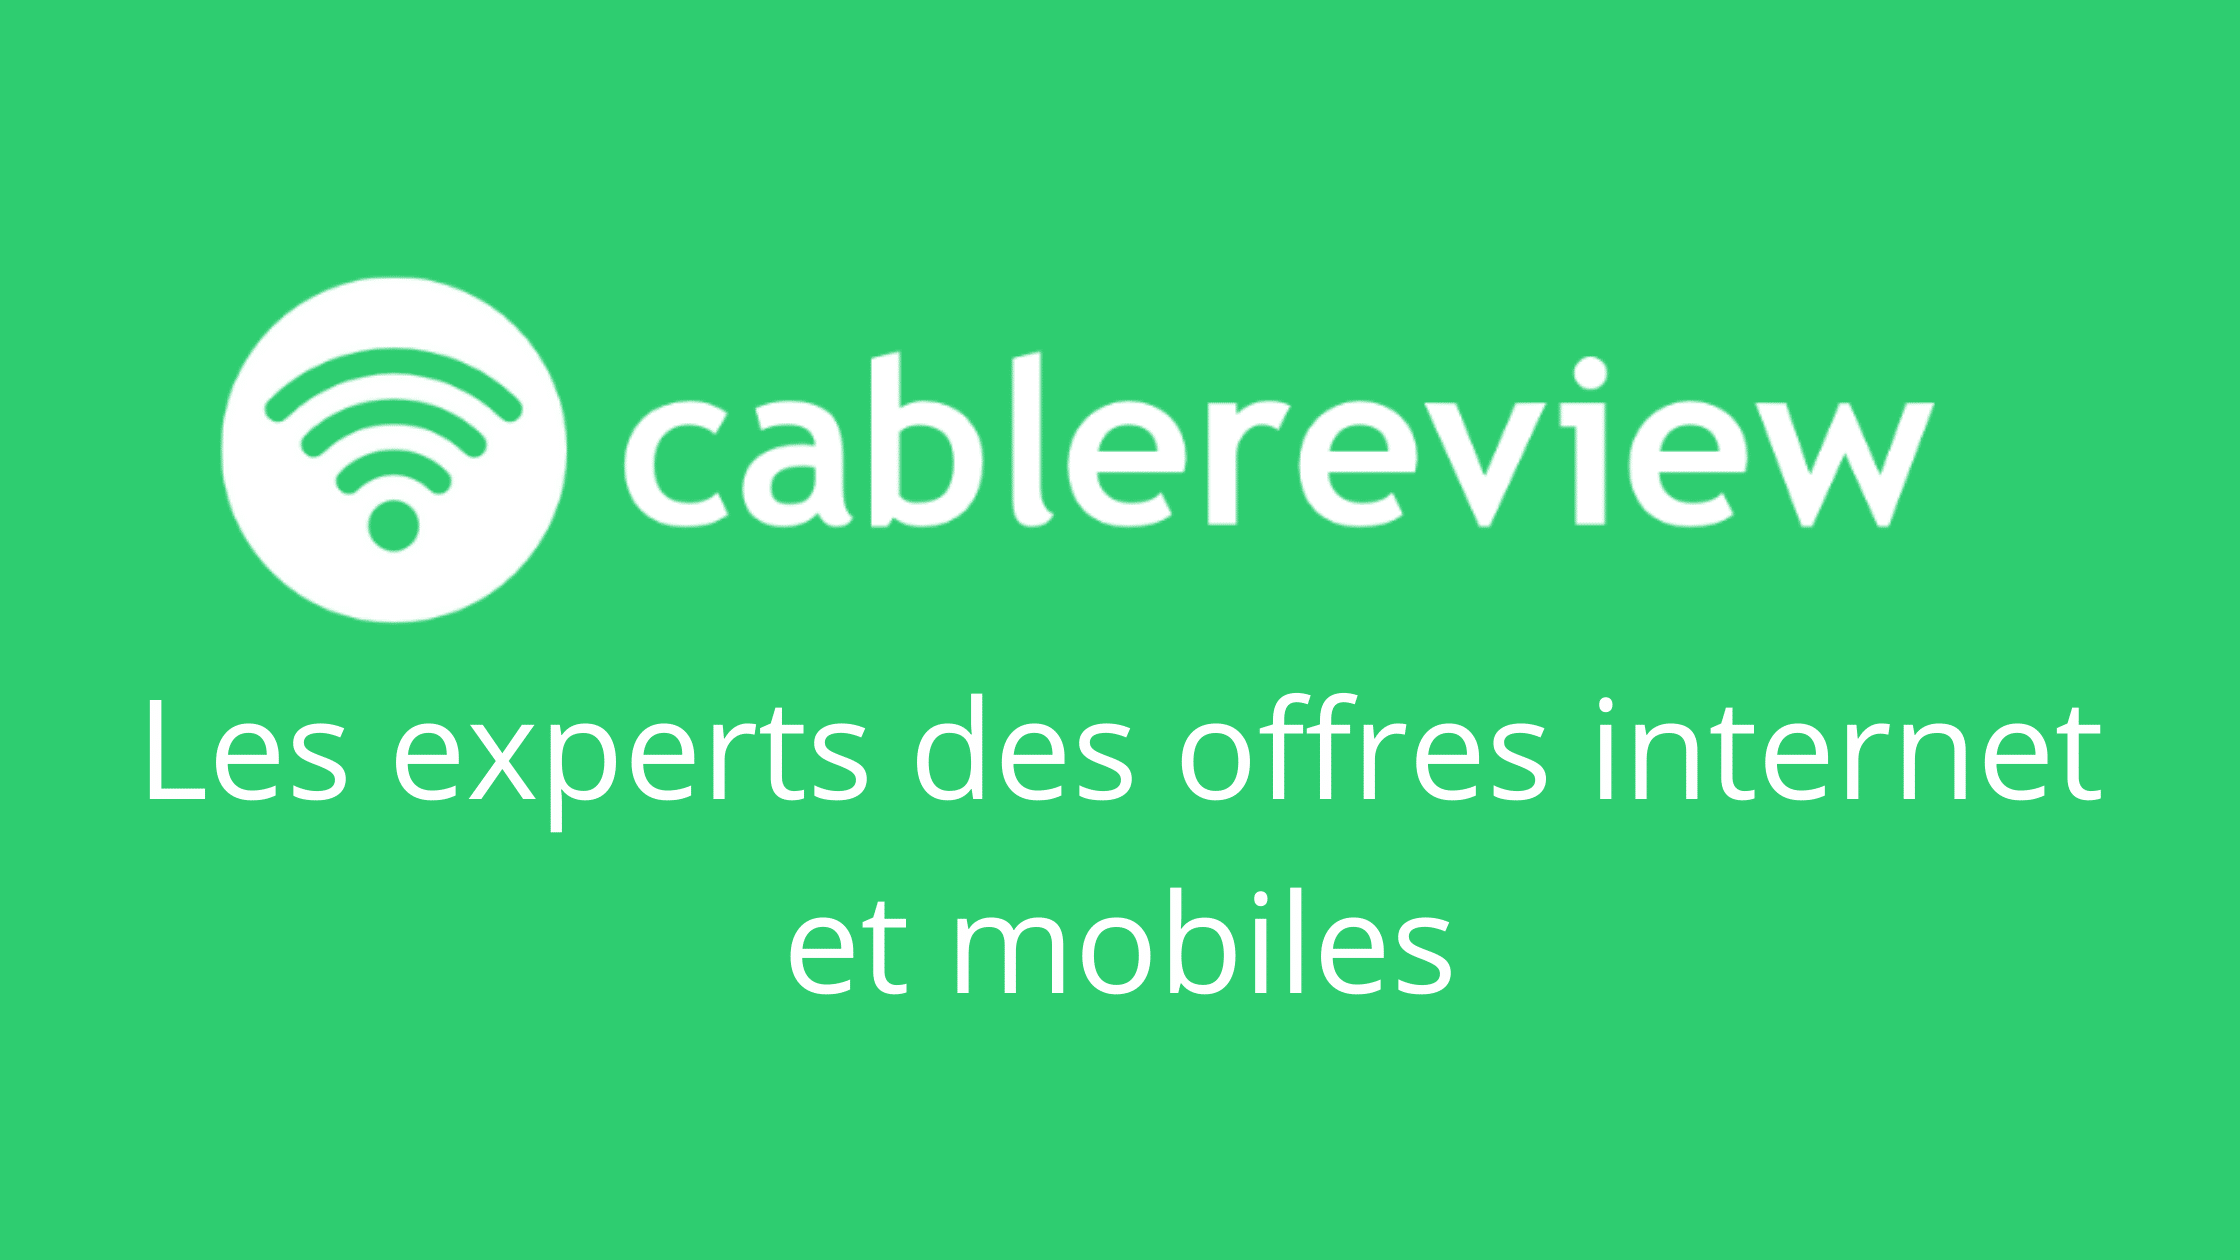 About CableReview